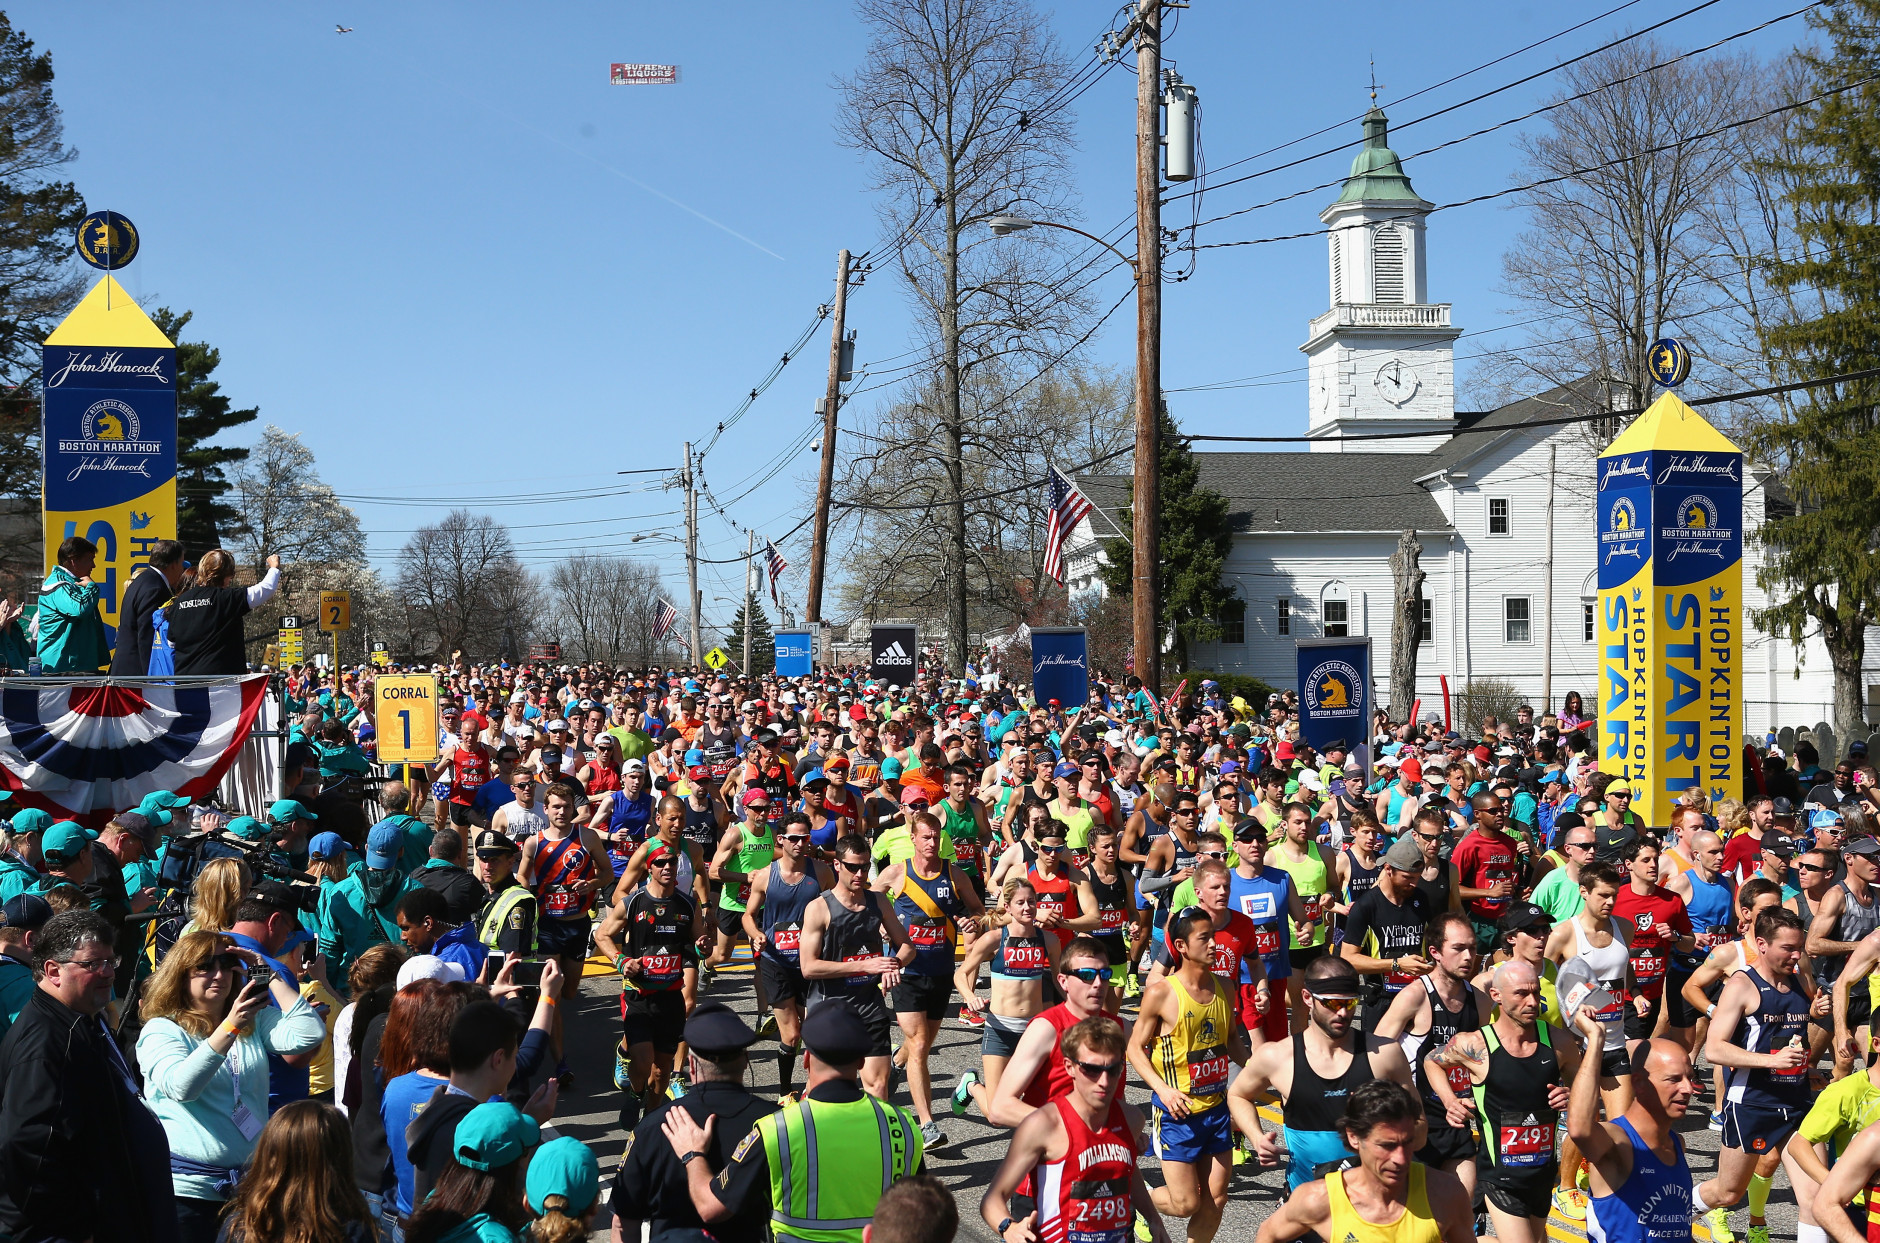 HOPKINTON, MA - APRIL 18:  A general view as Wave One runners start the 120th Boston Marathon on April 18, 2016 in Hopkinton, Massachusetts.  (Photo by Tim Bradbury/Getty Images)